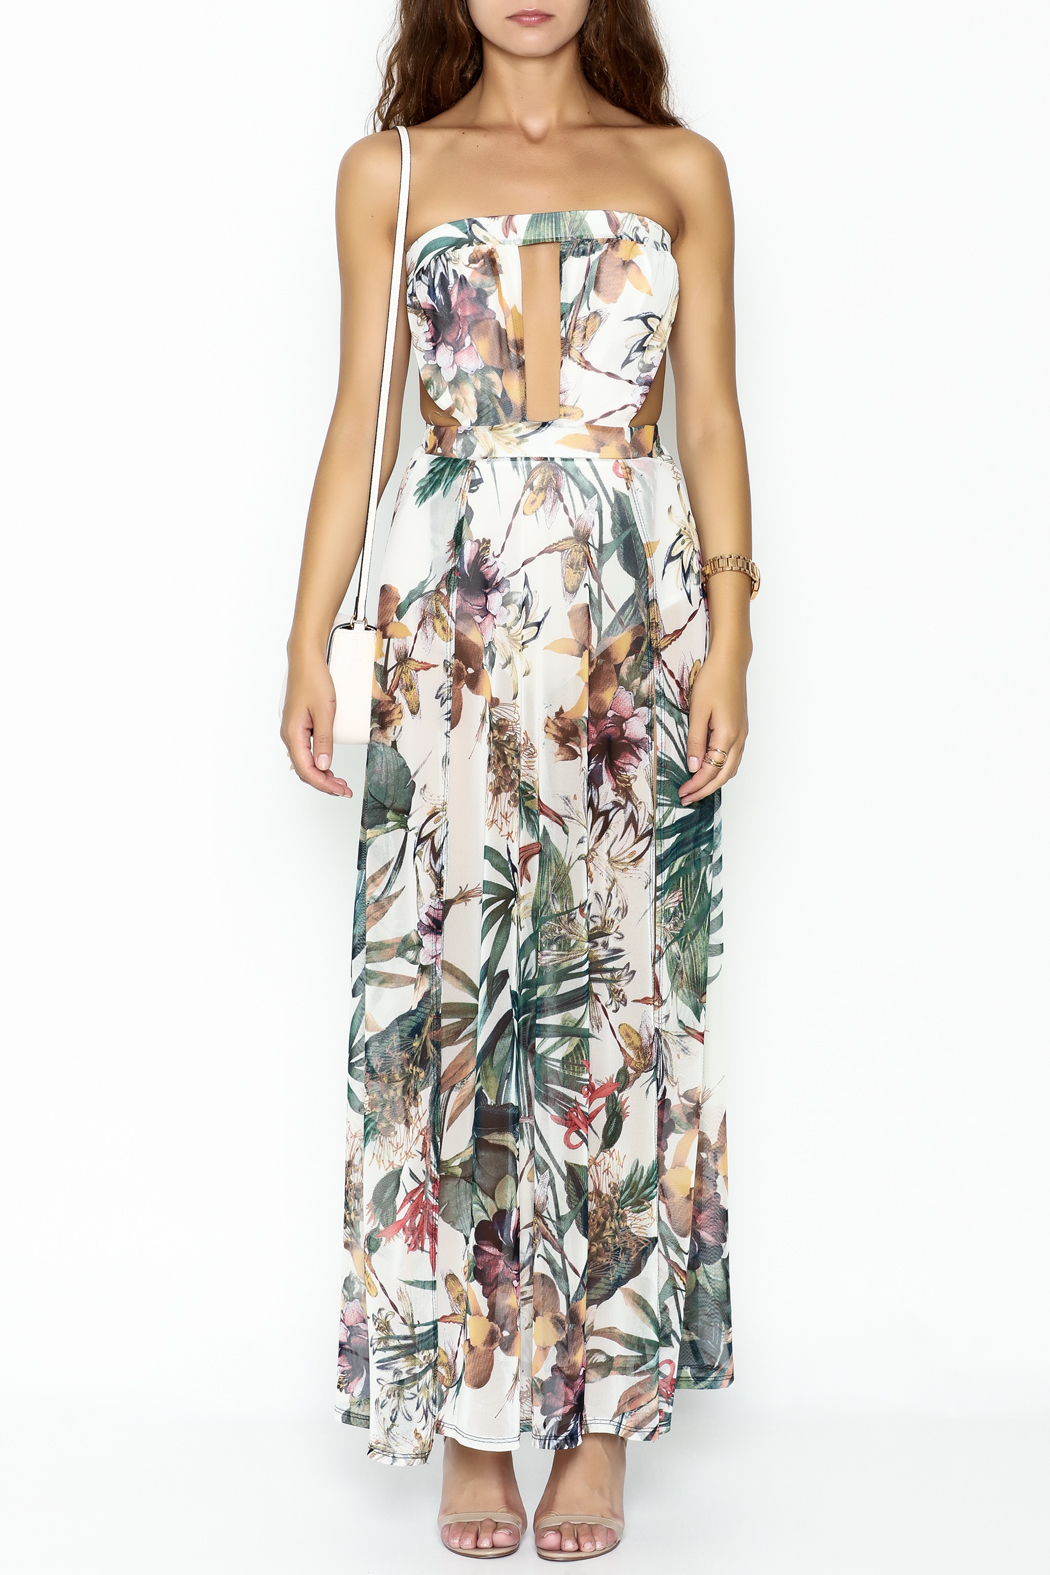 day and night Floral Dress Romper - Front Full Image